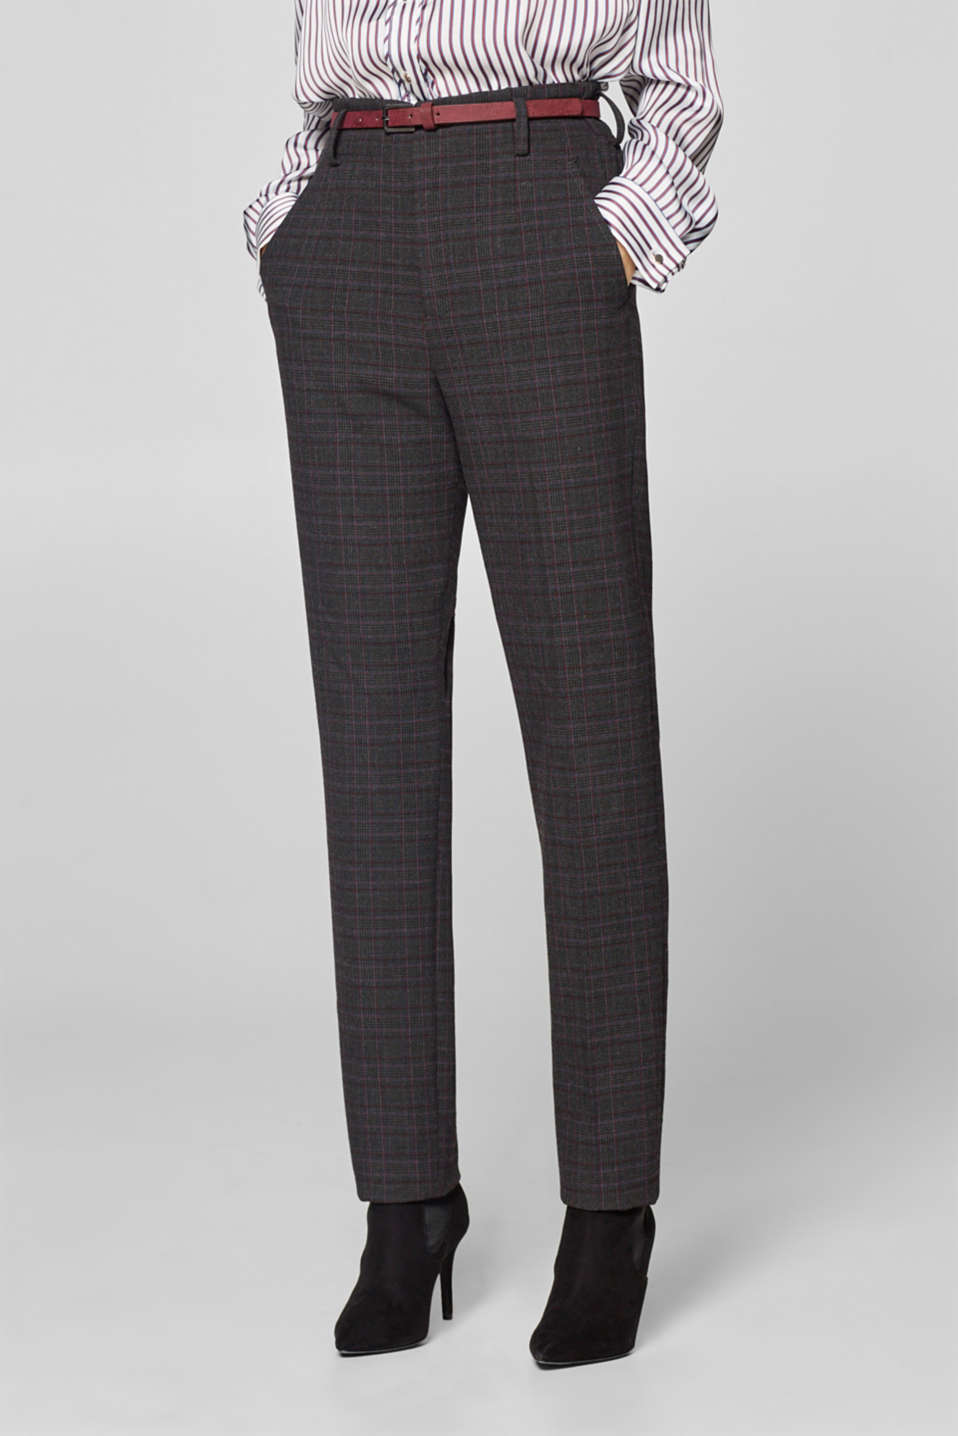 Esprit - Checked trousers with a high waistband and a belt